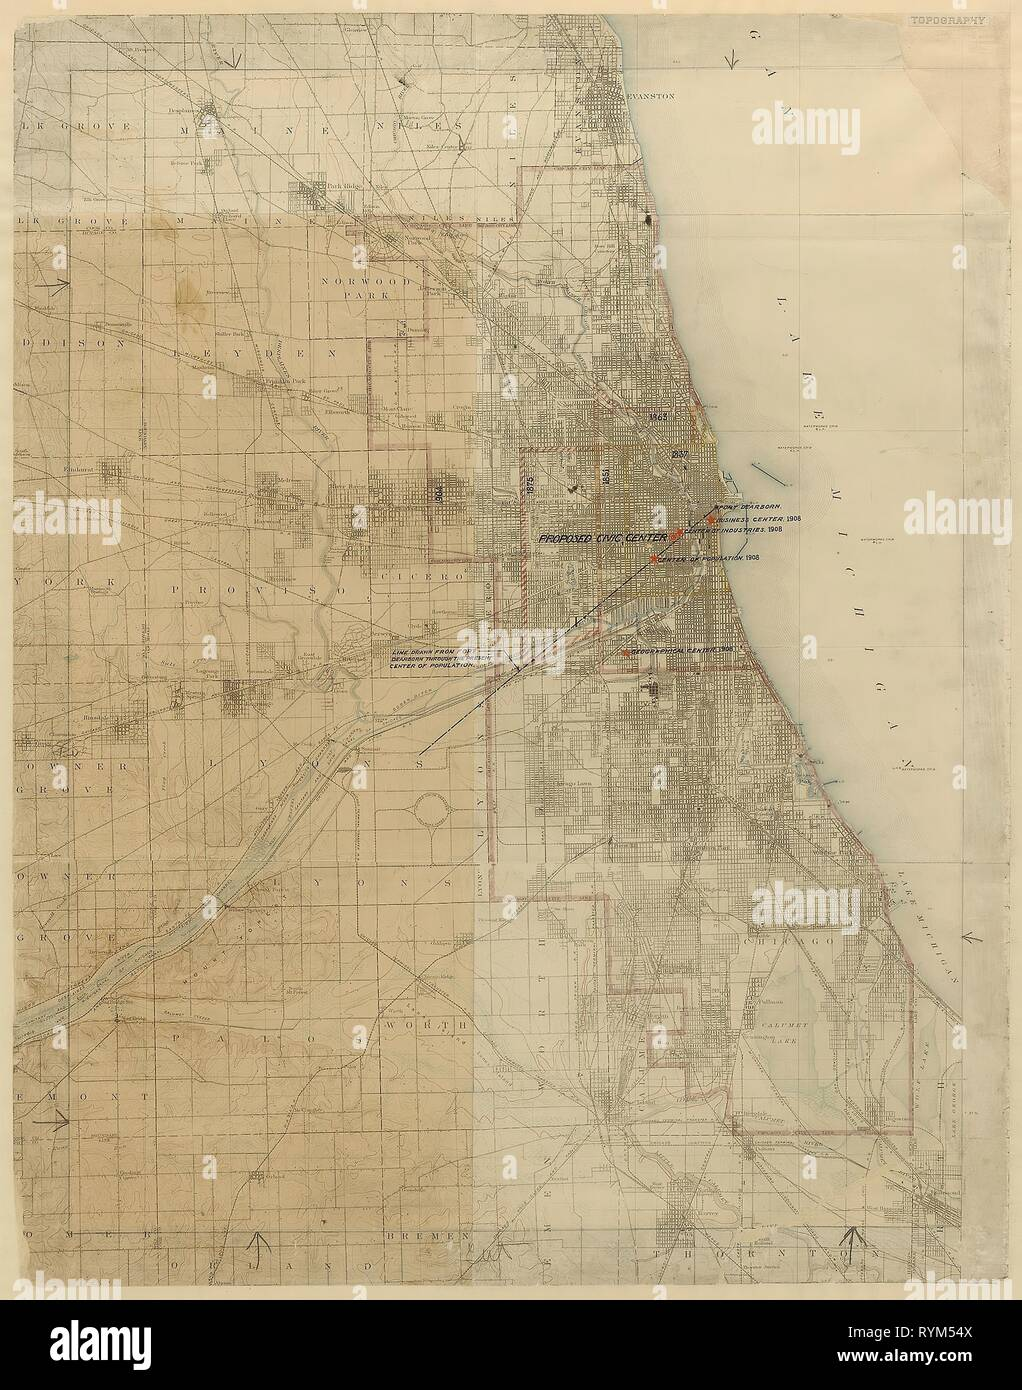 Map Of America Showing Chicago.Plan Of Chicago Chicago Illinois Diagram Showing City Growth